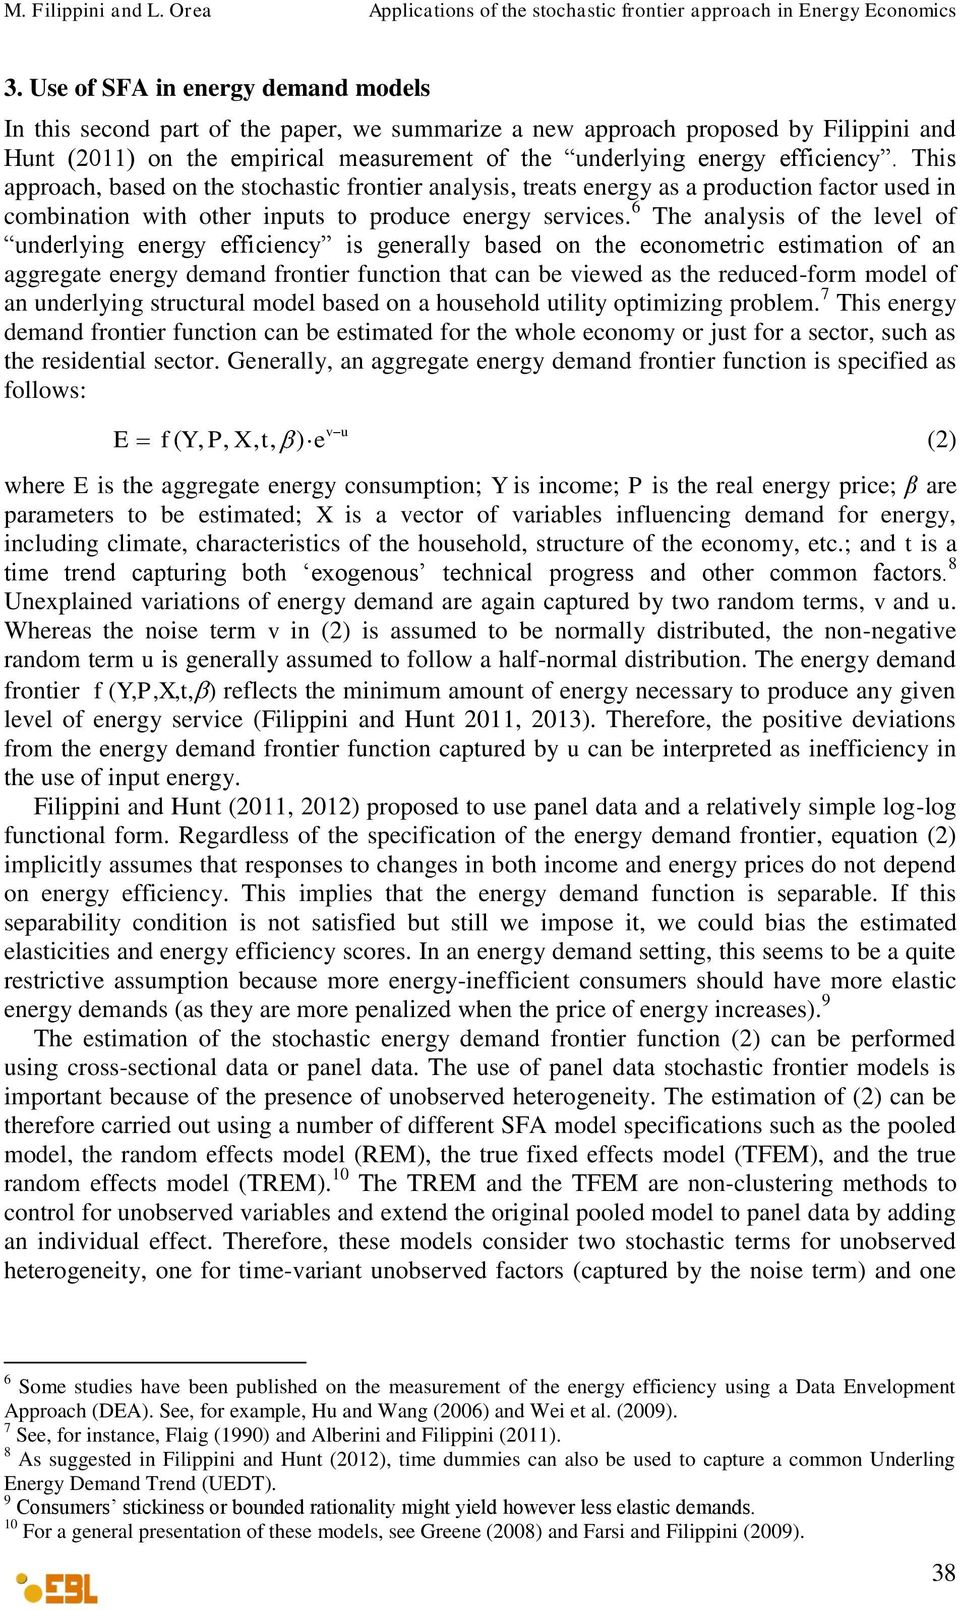 6 The analysis of the level of underlying energy efficiency is generally based on the econometric estimation of an aggregate energy demand frontier function that can be viewed as the reduced-form